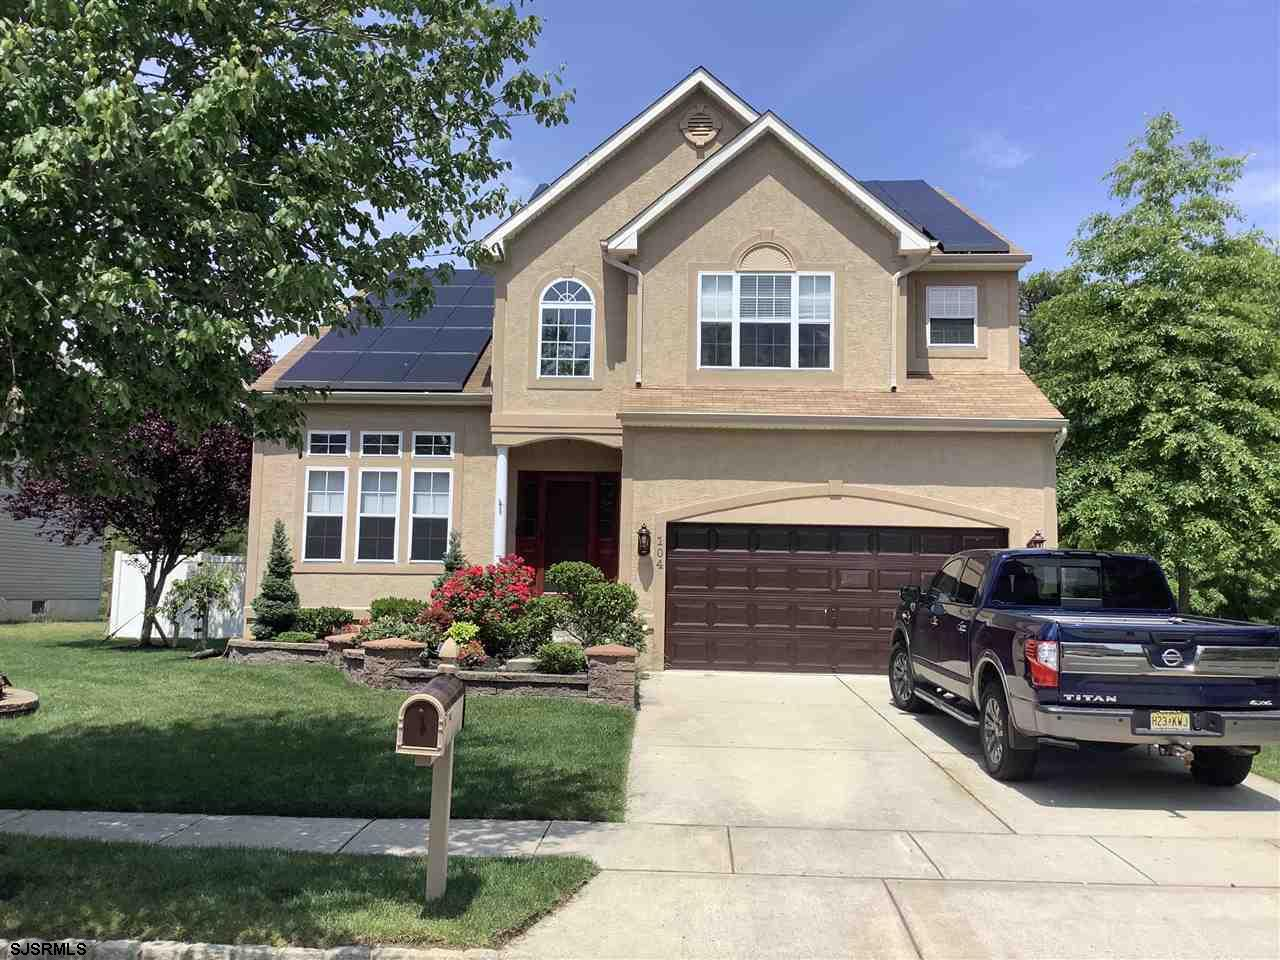 Gorgeous home in a development on a cul de sac. Upgrades throughout stainless steel appliances, beau